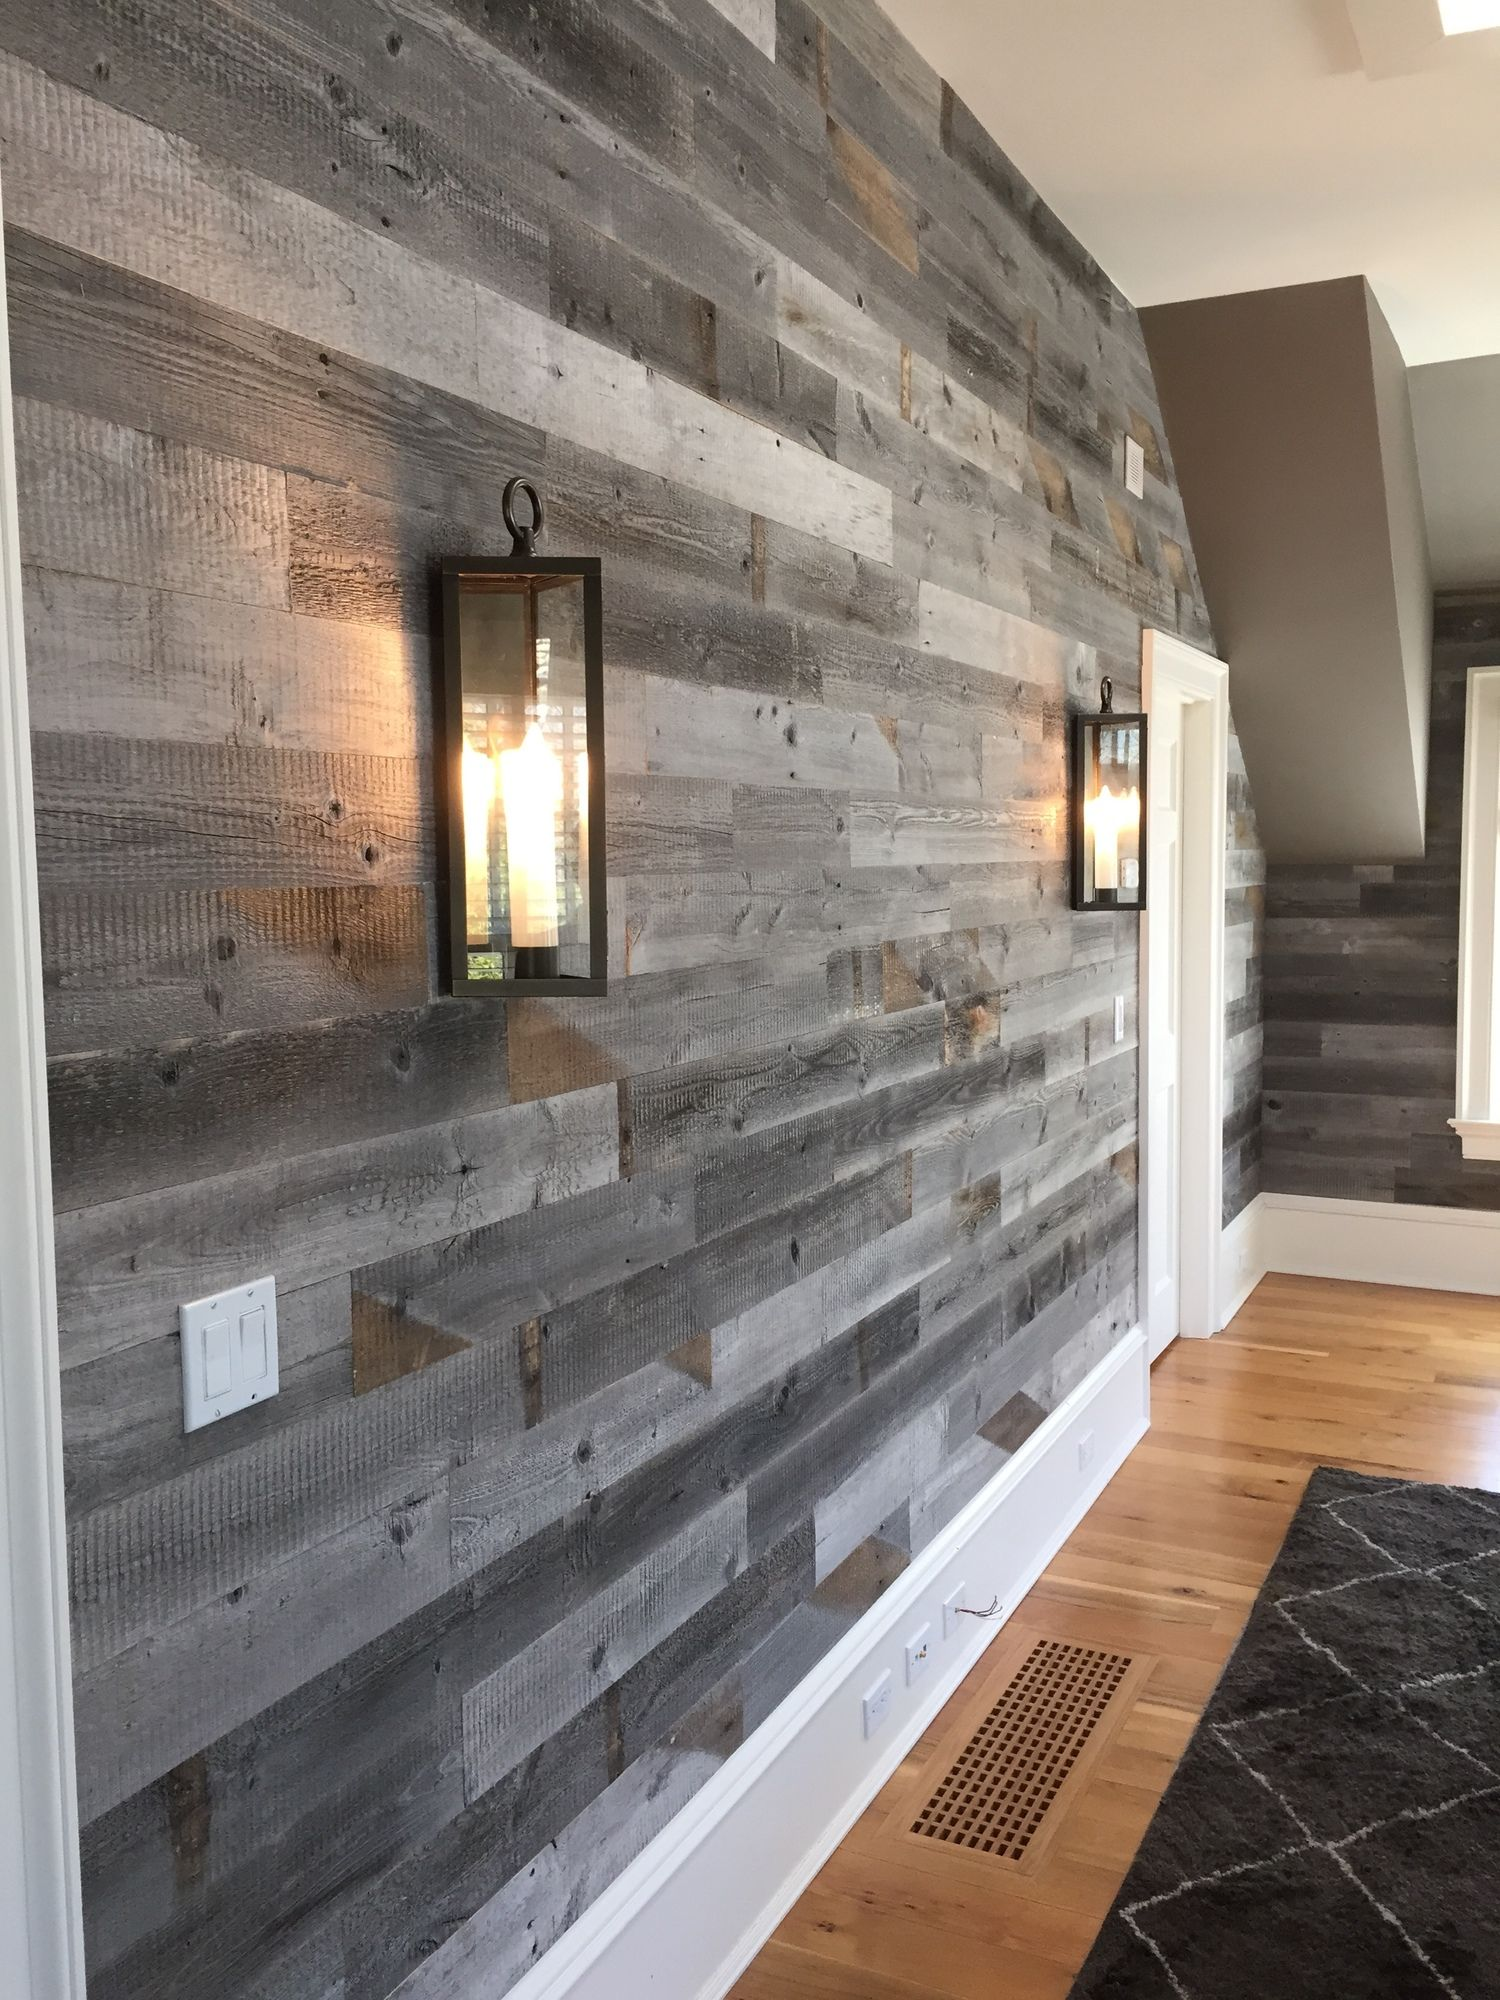 Reclaimed Weathered Wood in 2018   Homebody   Pinterest ...